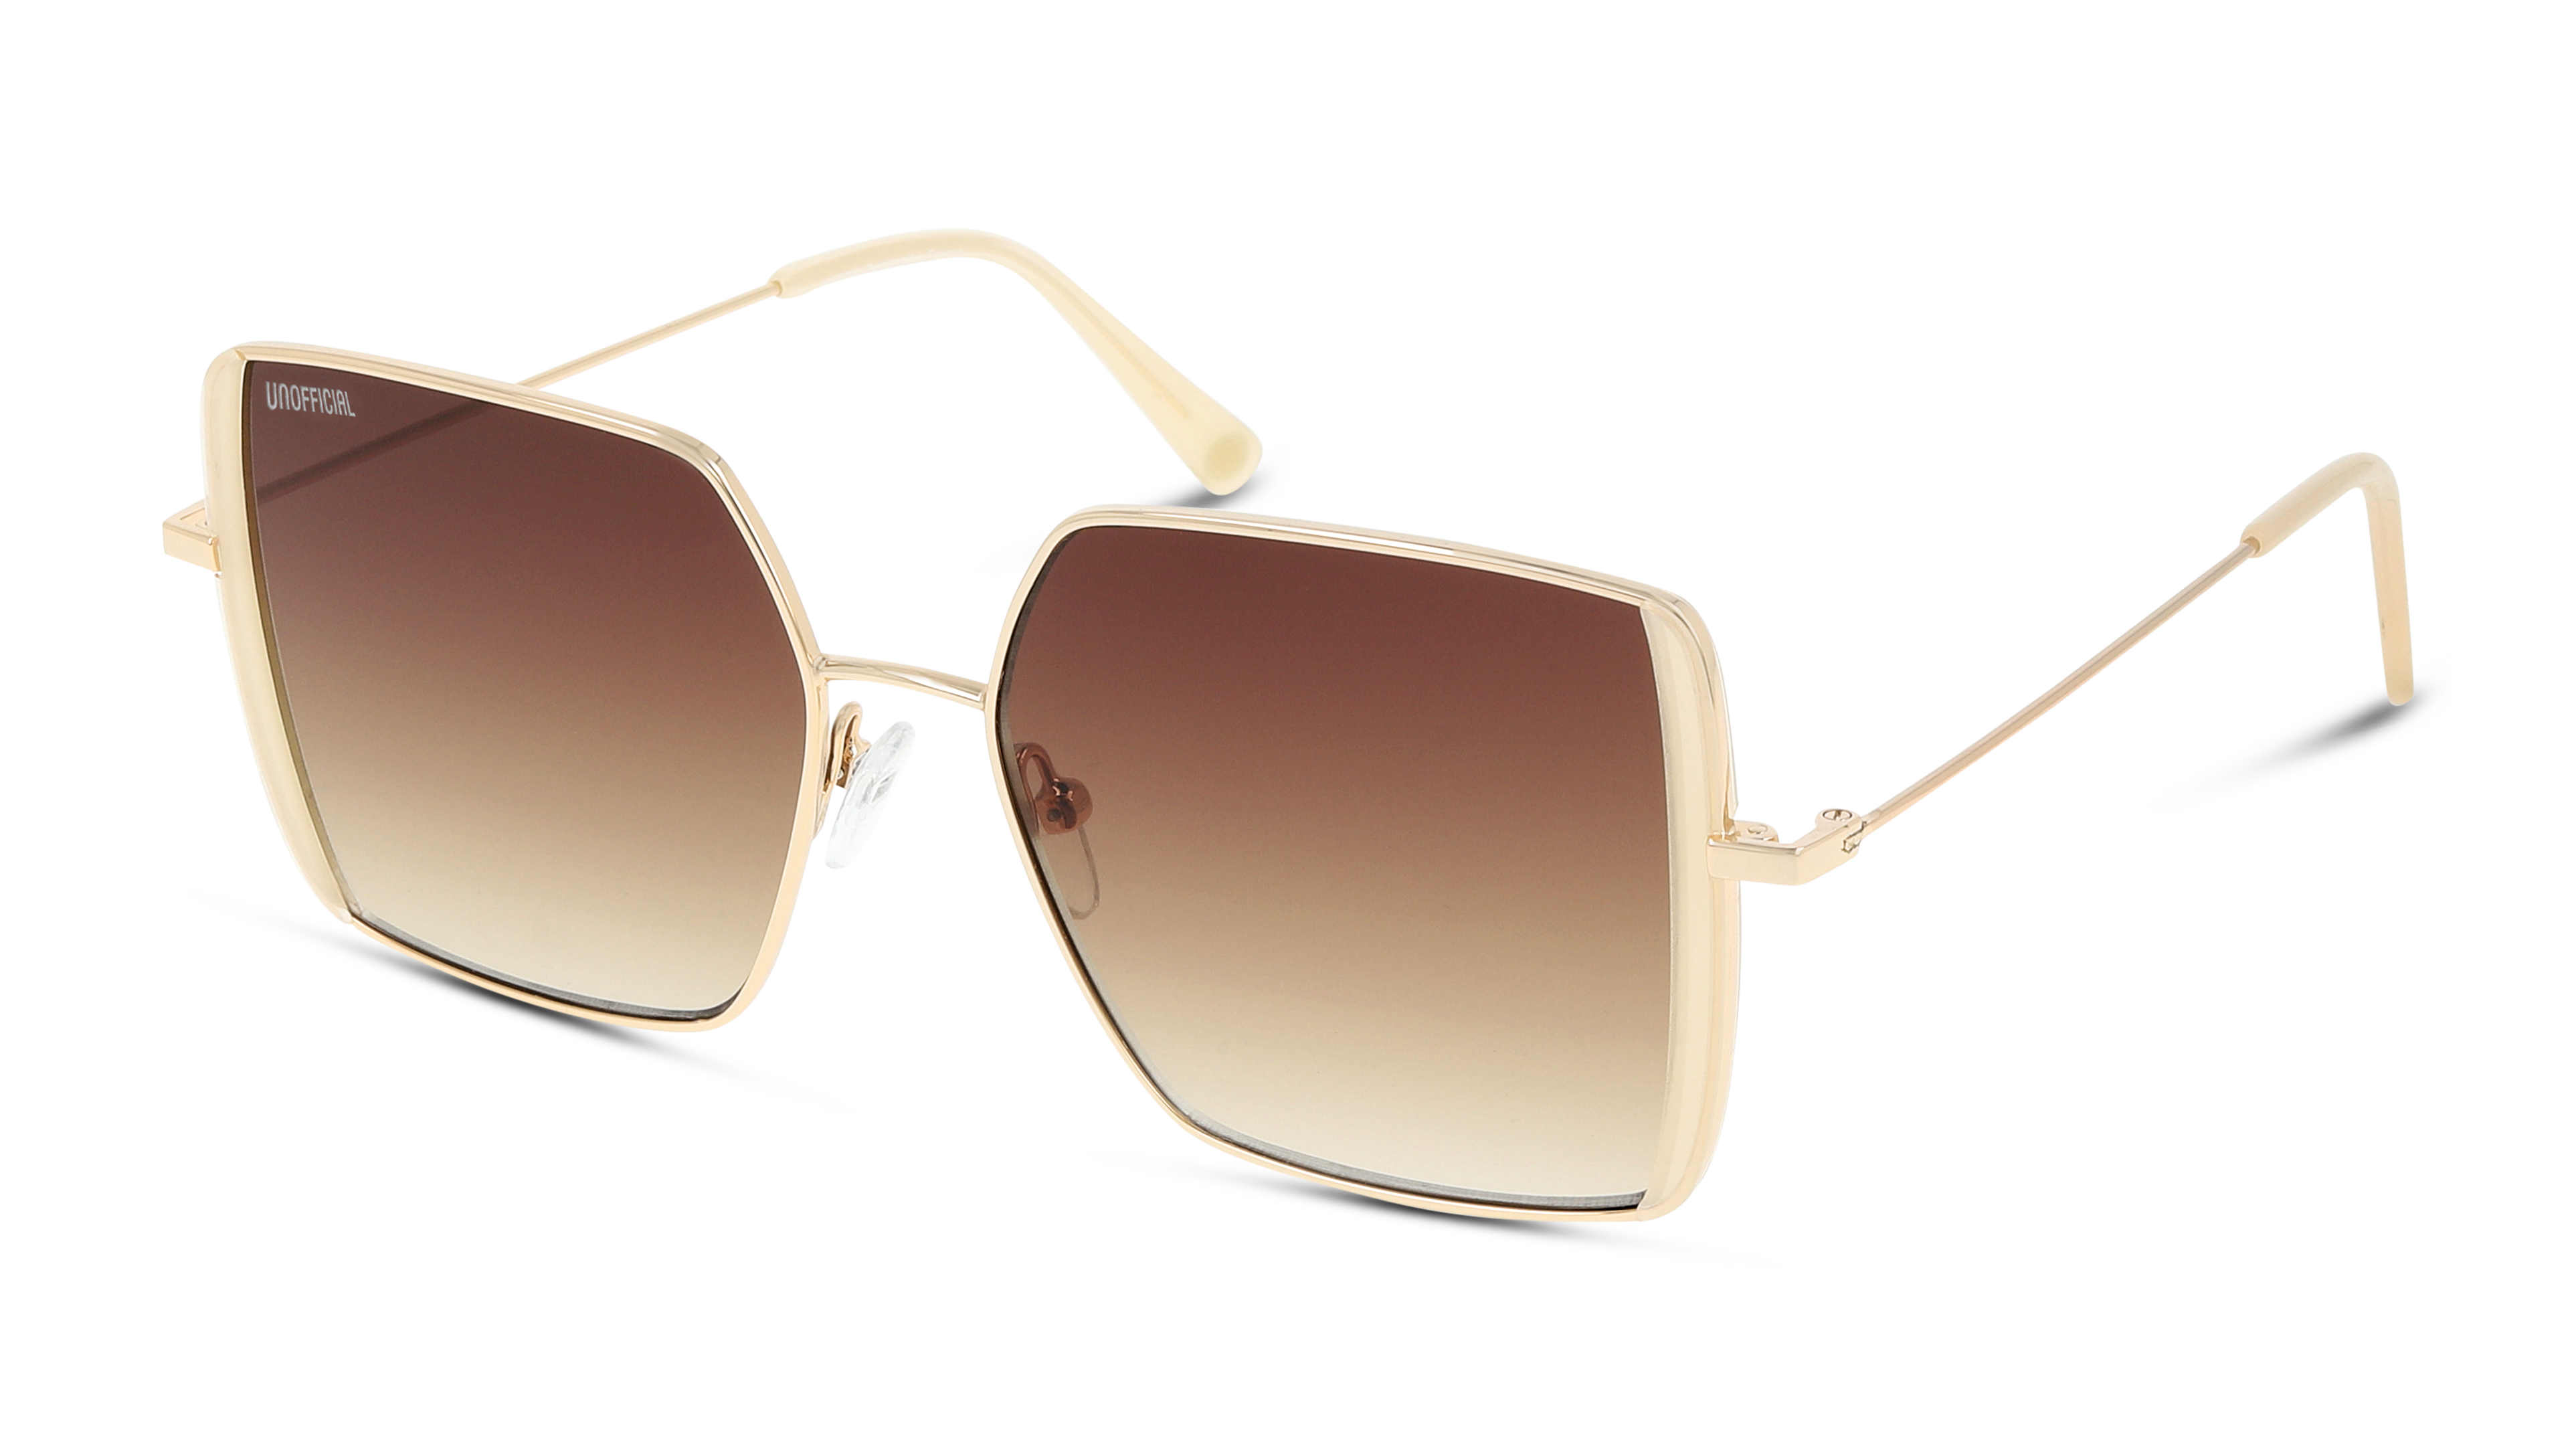 Angle_Left01 Unofficial Unofficial UNSF0080 DDN0 54/15 Goud, Beige/Bruin